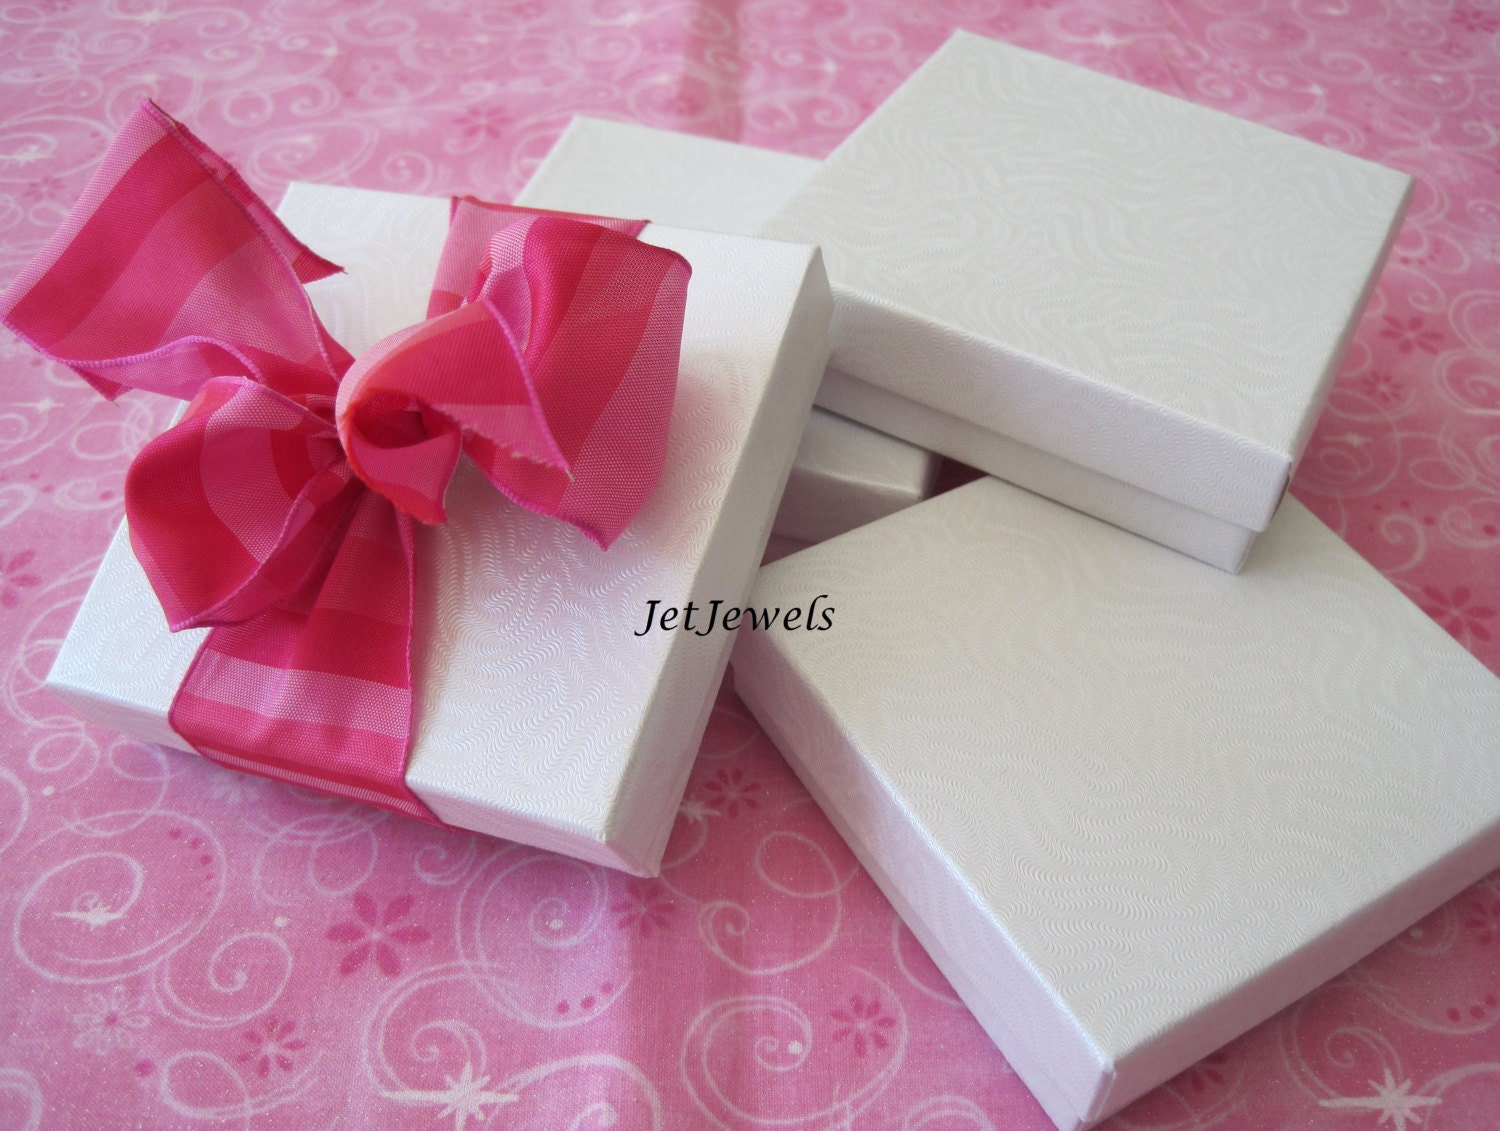 10 Jewelry Gift Boxes White Gift Boxes Kraft Boxes Wedding Favor Boxes Bridesmaid Gift Box